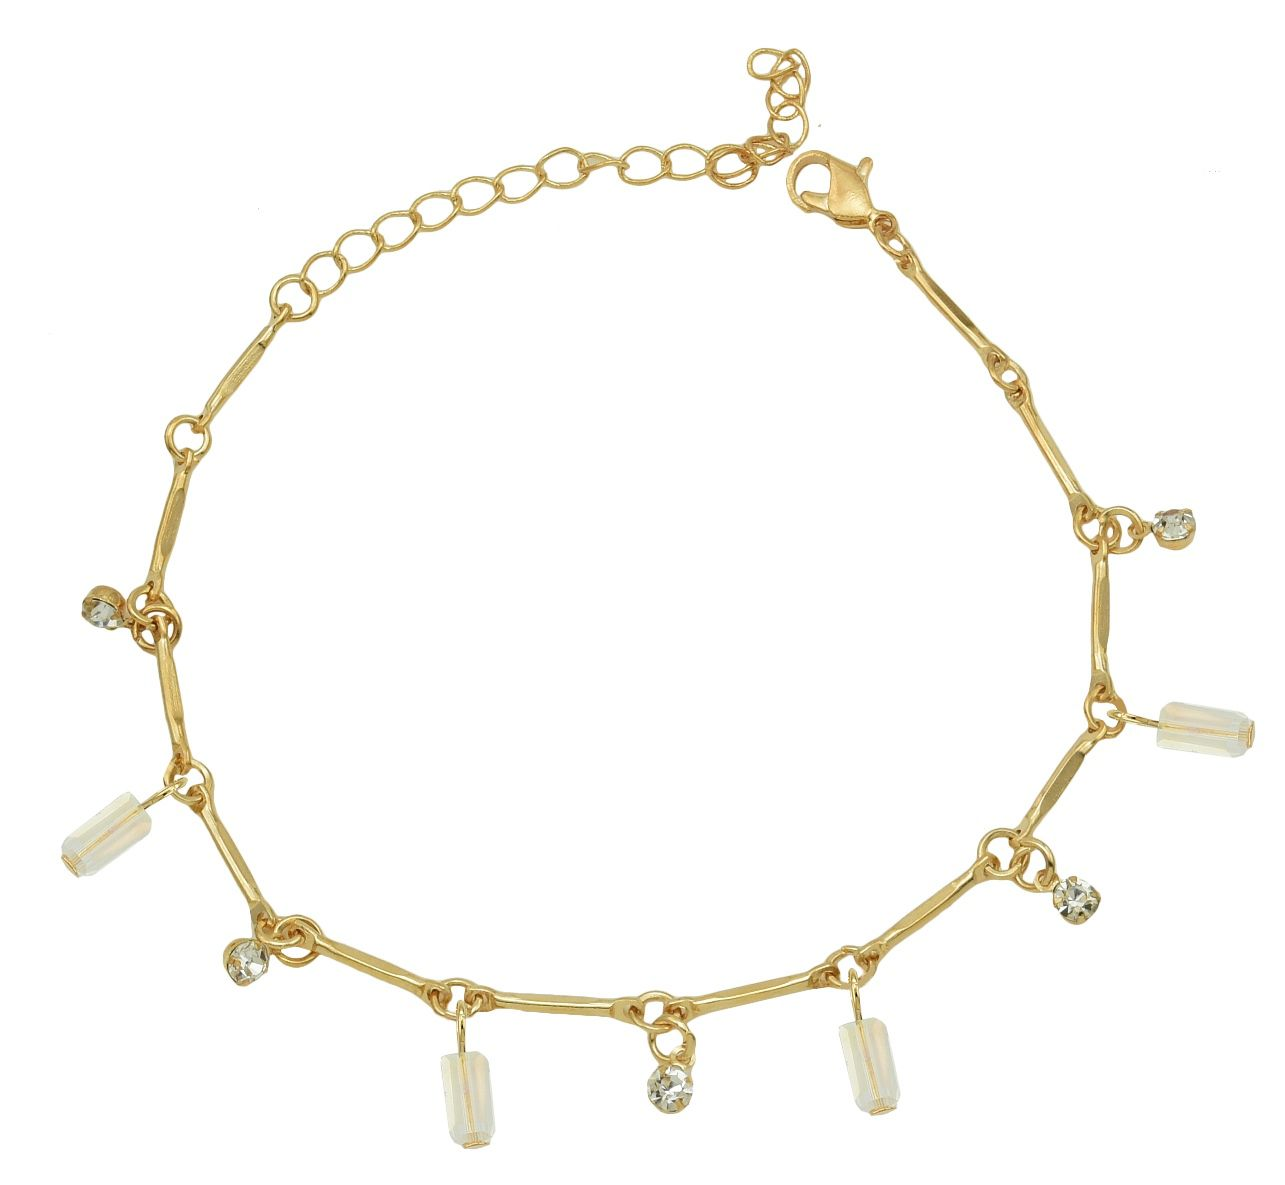 High Trendz Trendy Light Weight Gold Plated Anklet With Hanging White Crystal For Women And Girls